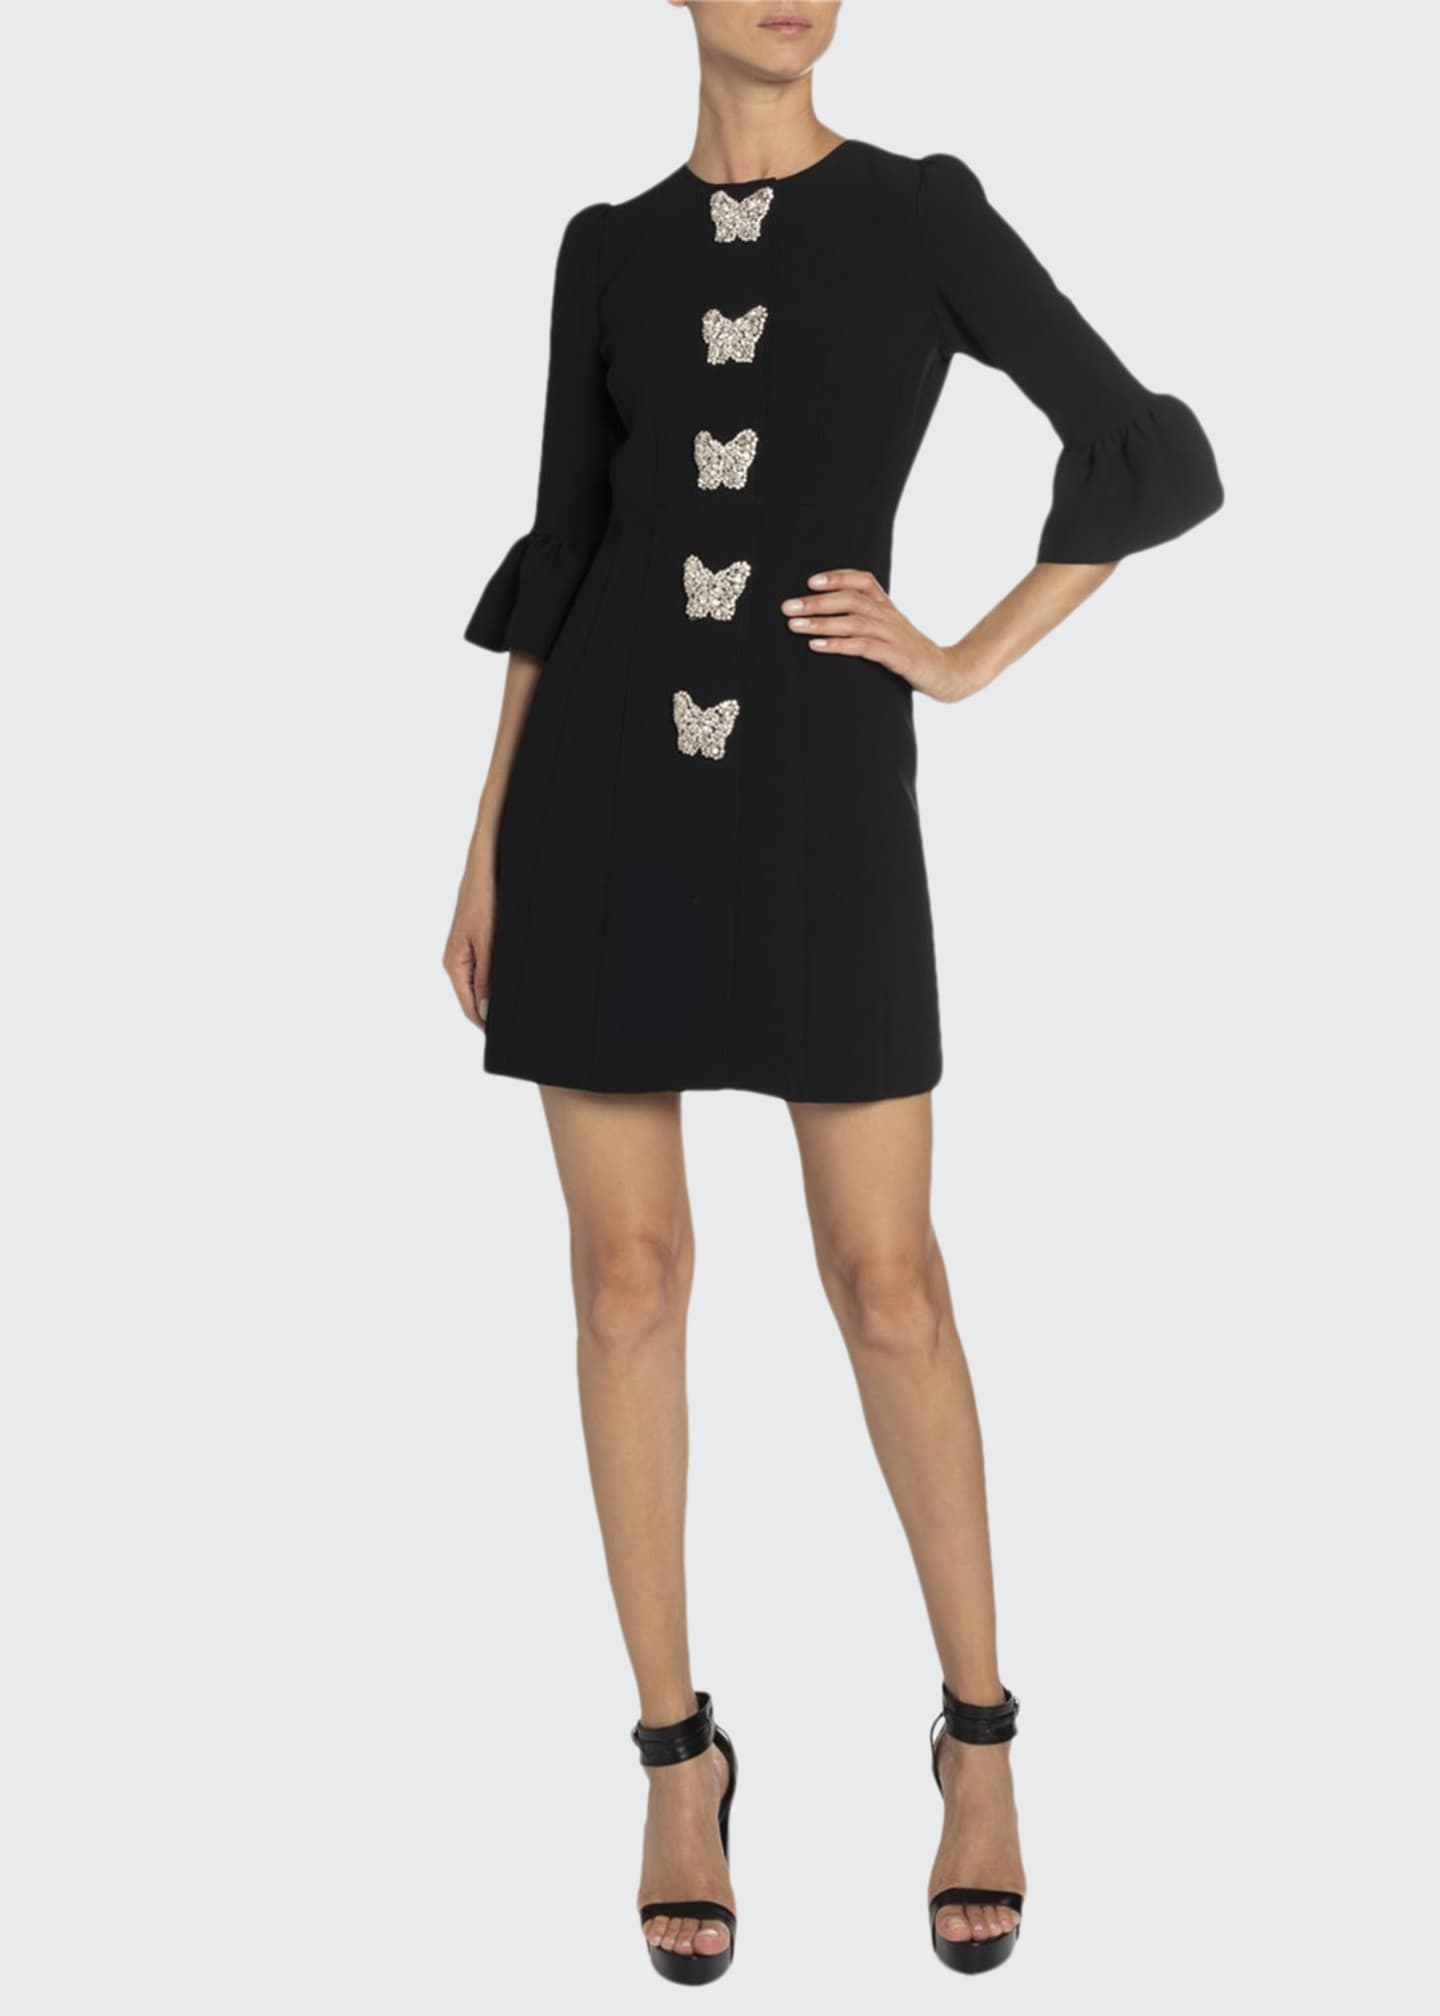 Andrew Gn Crystal-Trim Mini Dress